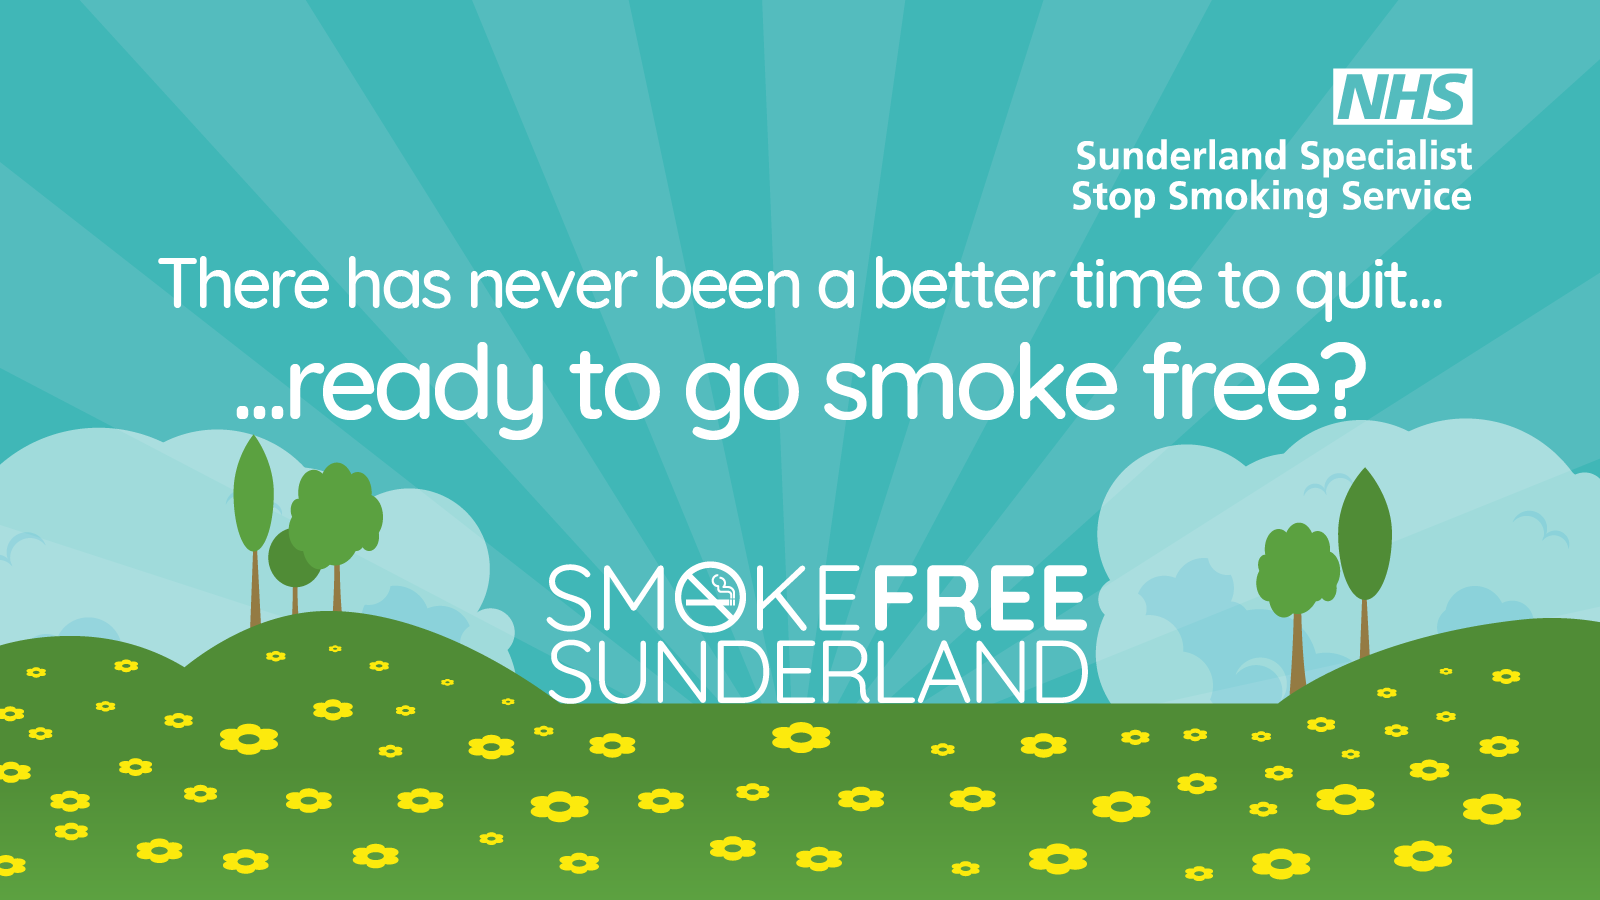 Specialist stop smoking support comes to Sunderland